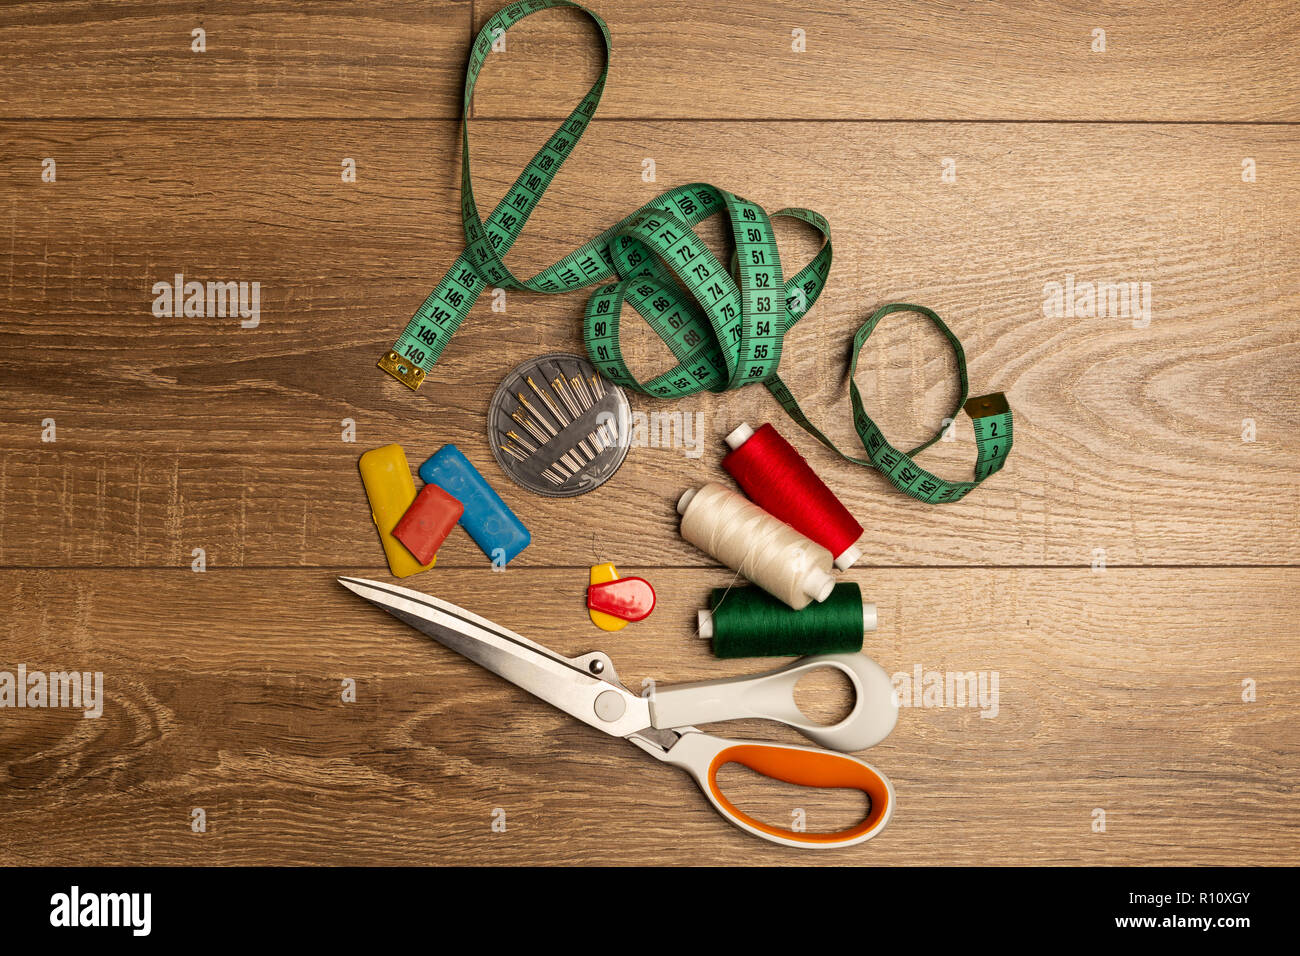 Scissors, needles, thread, chalk, measuring tape as sewing equipment on wooden work bench - Stock Image